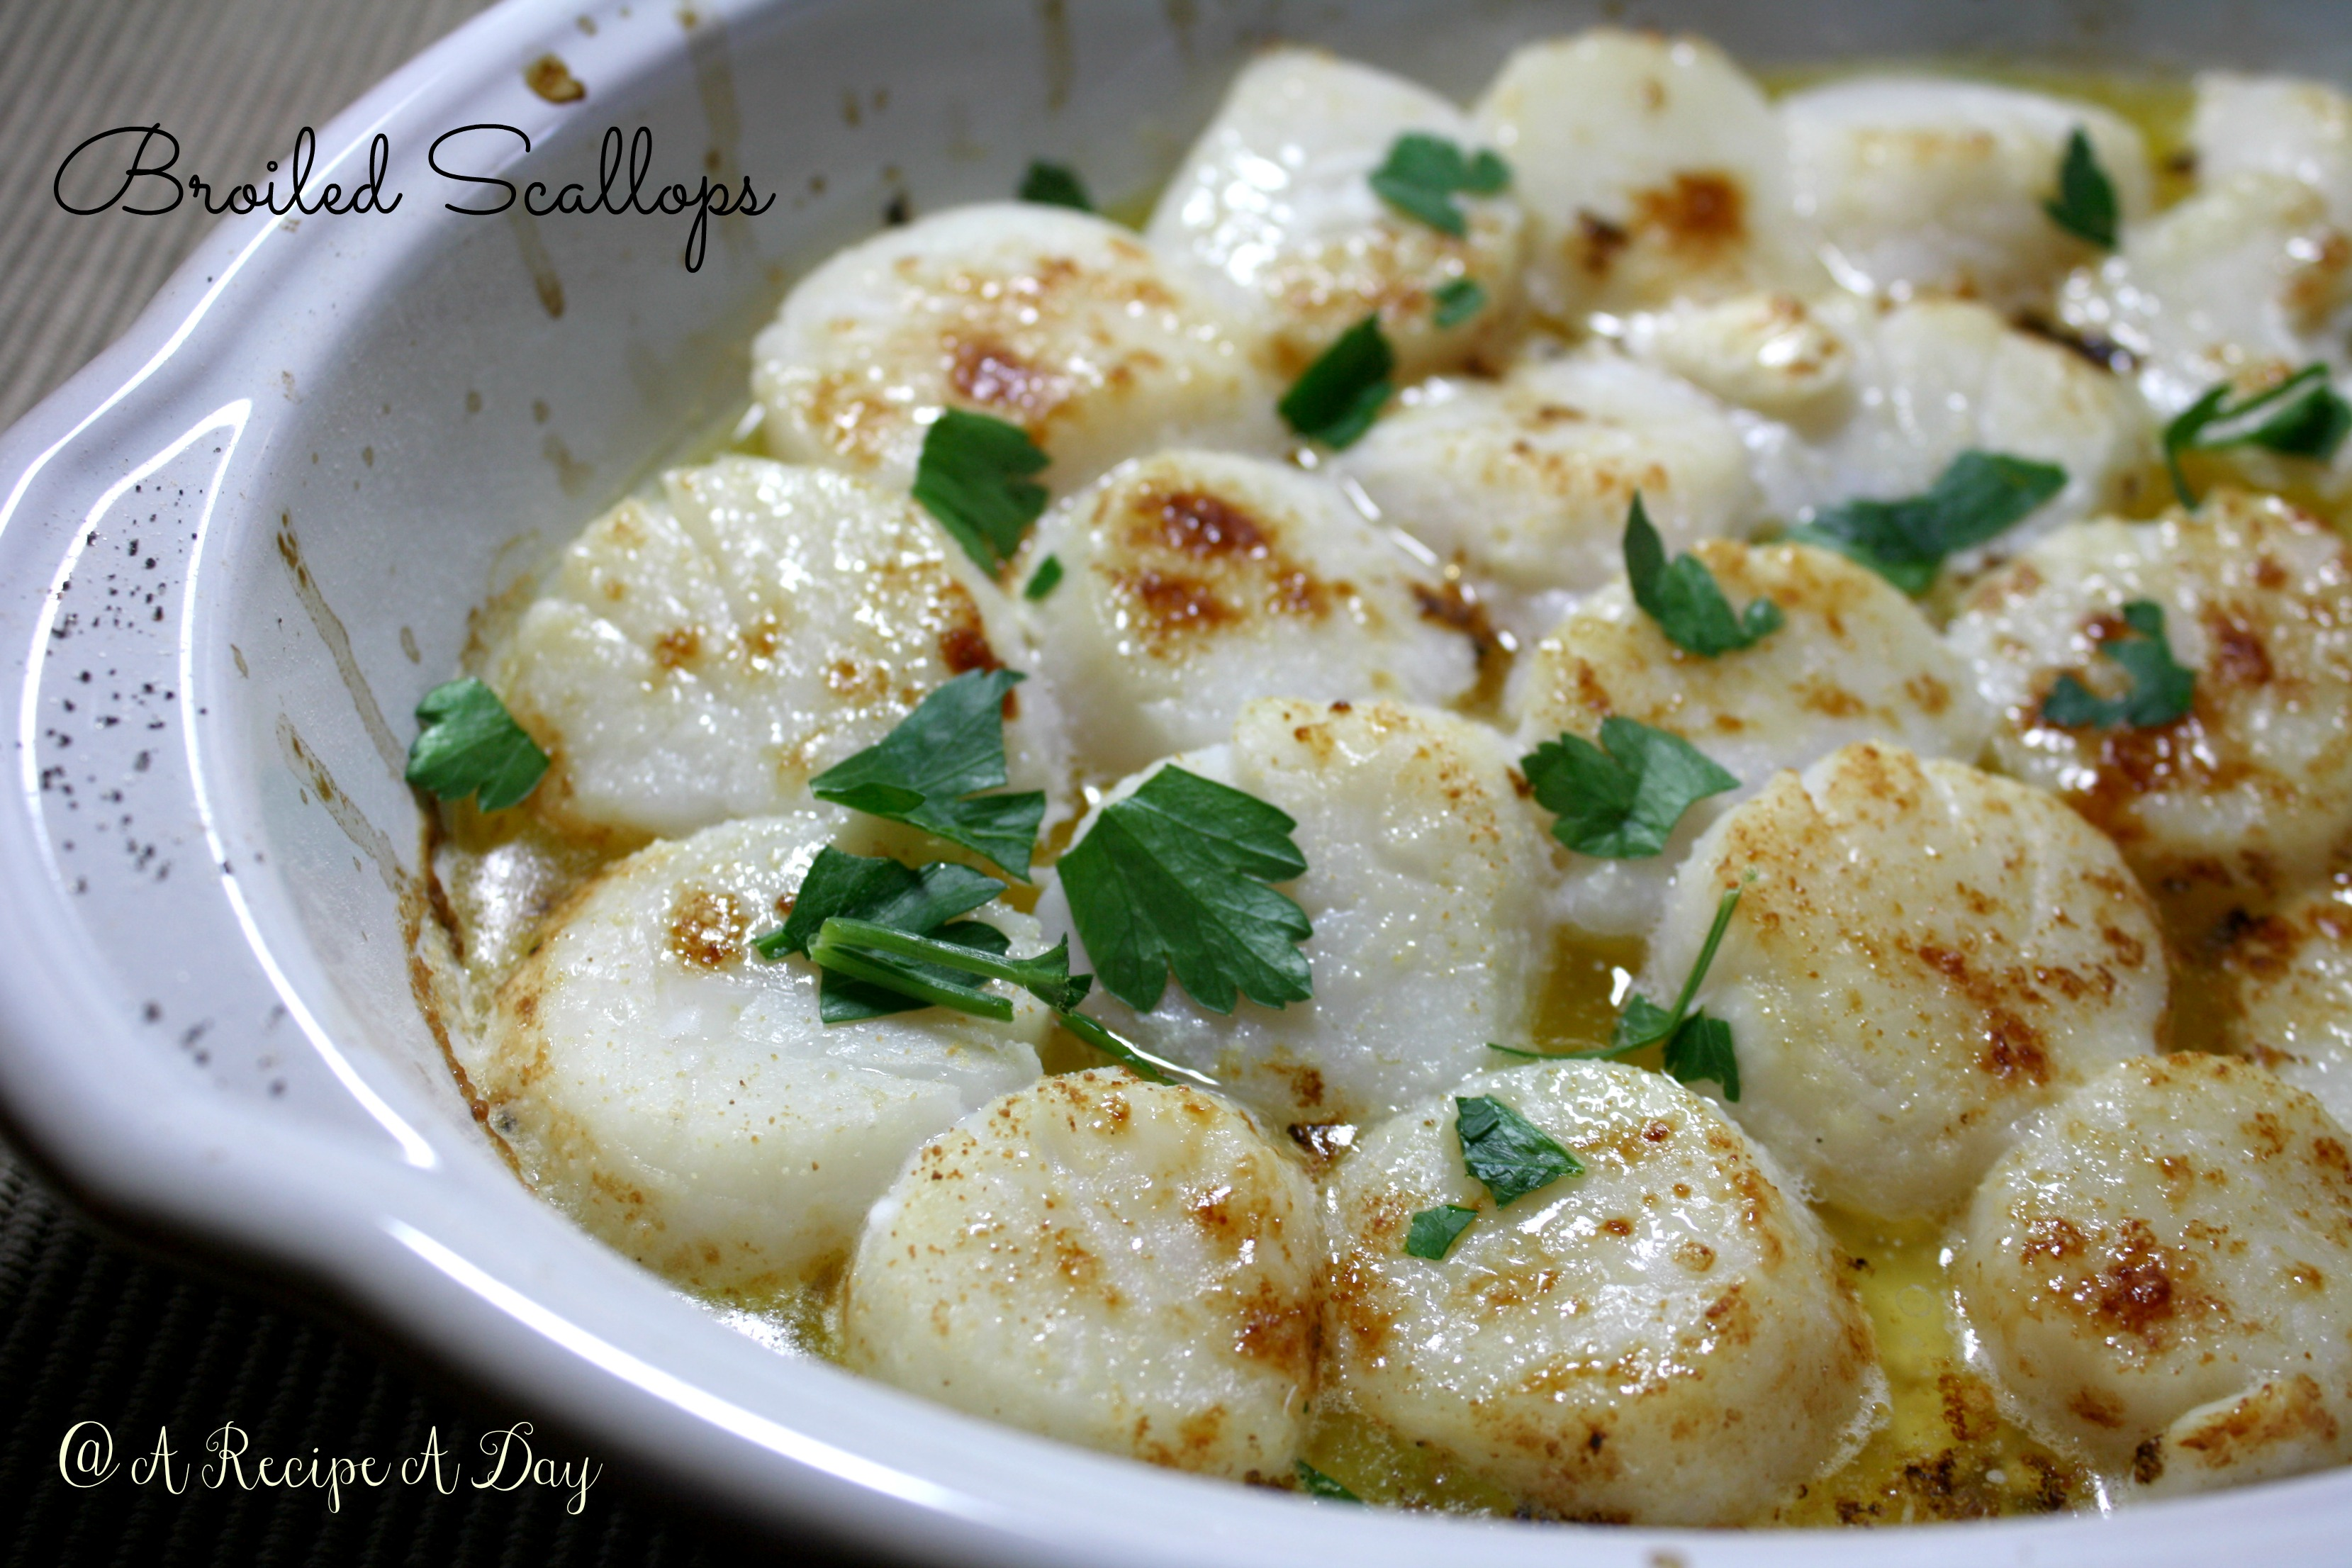 Broiled Scallops 1